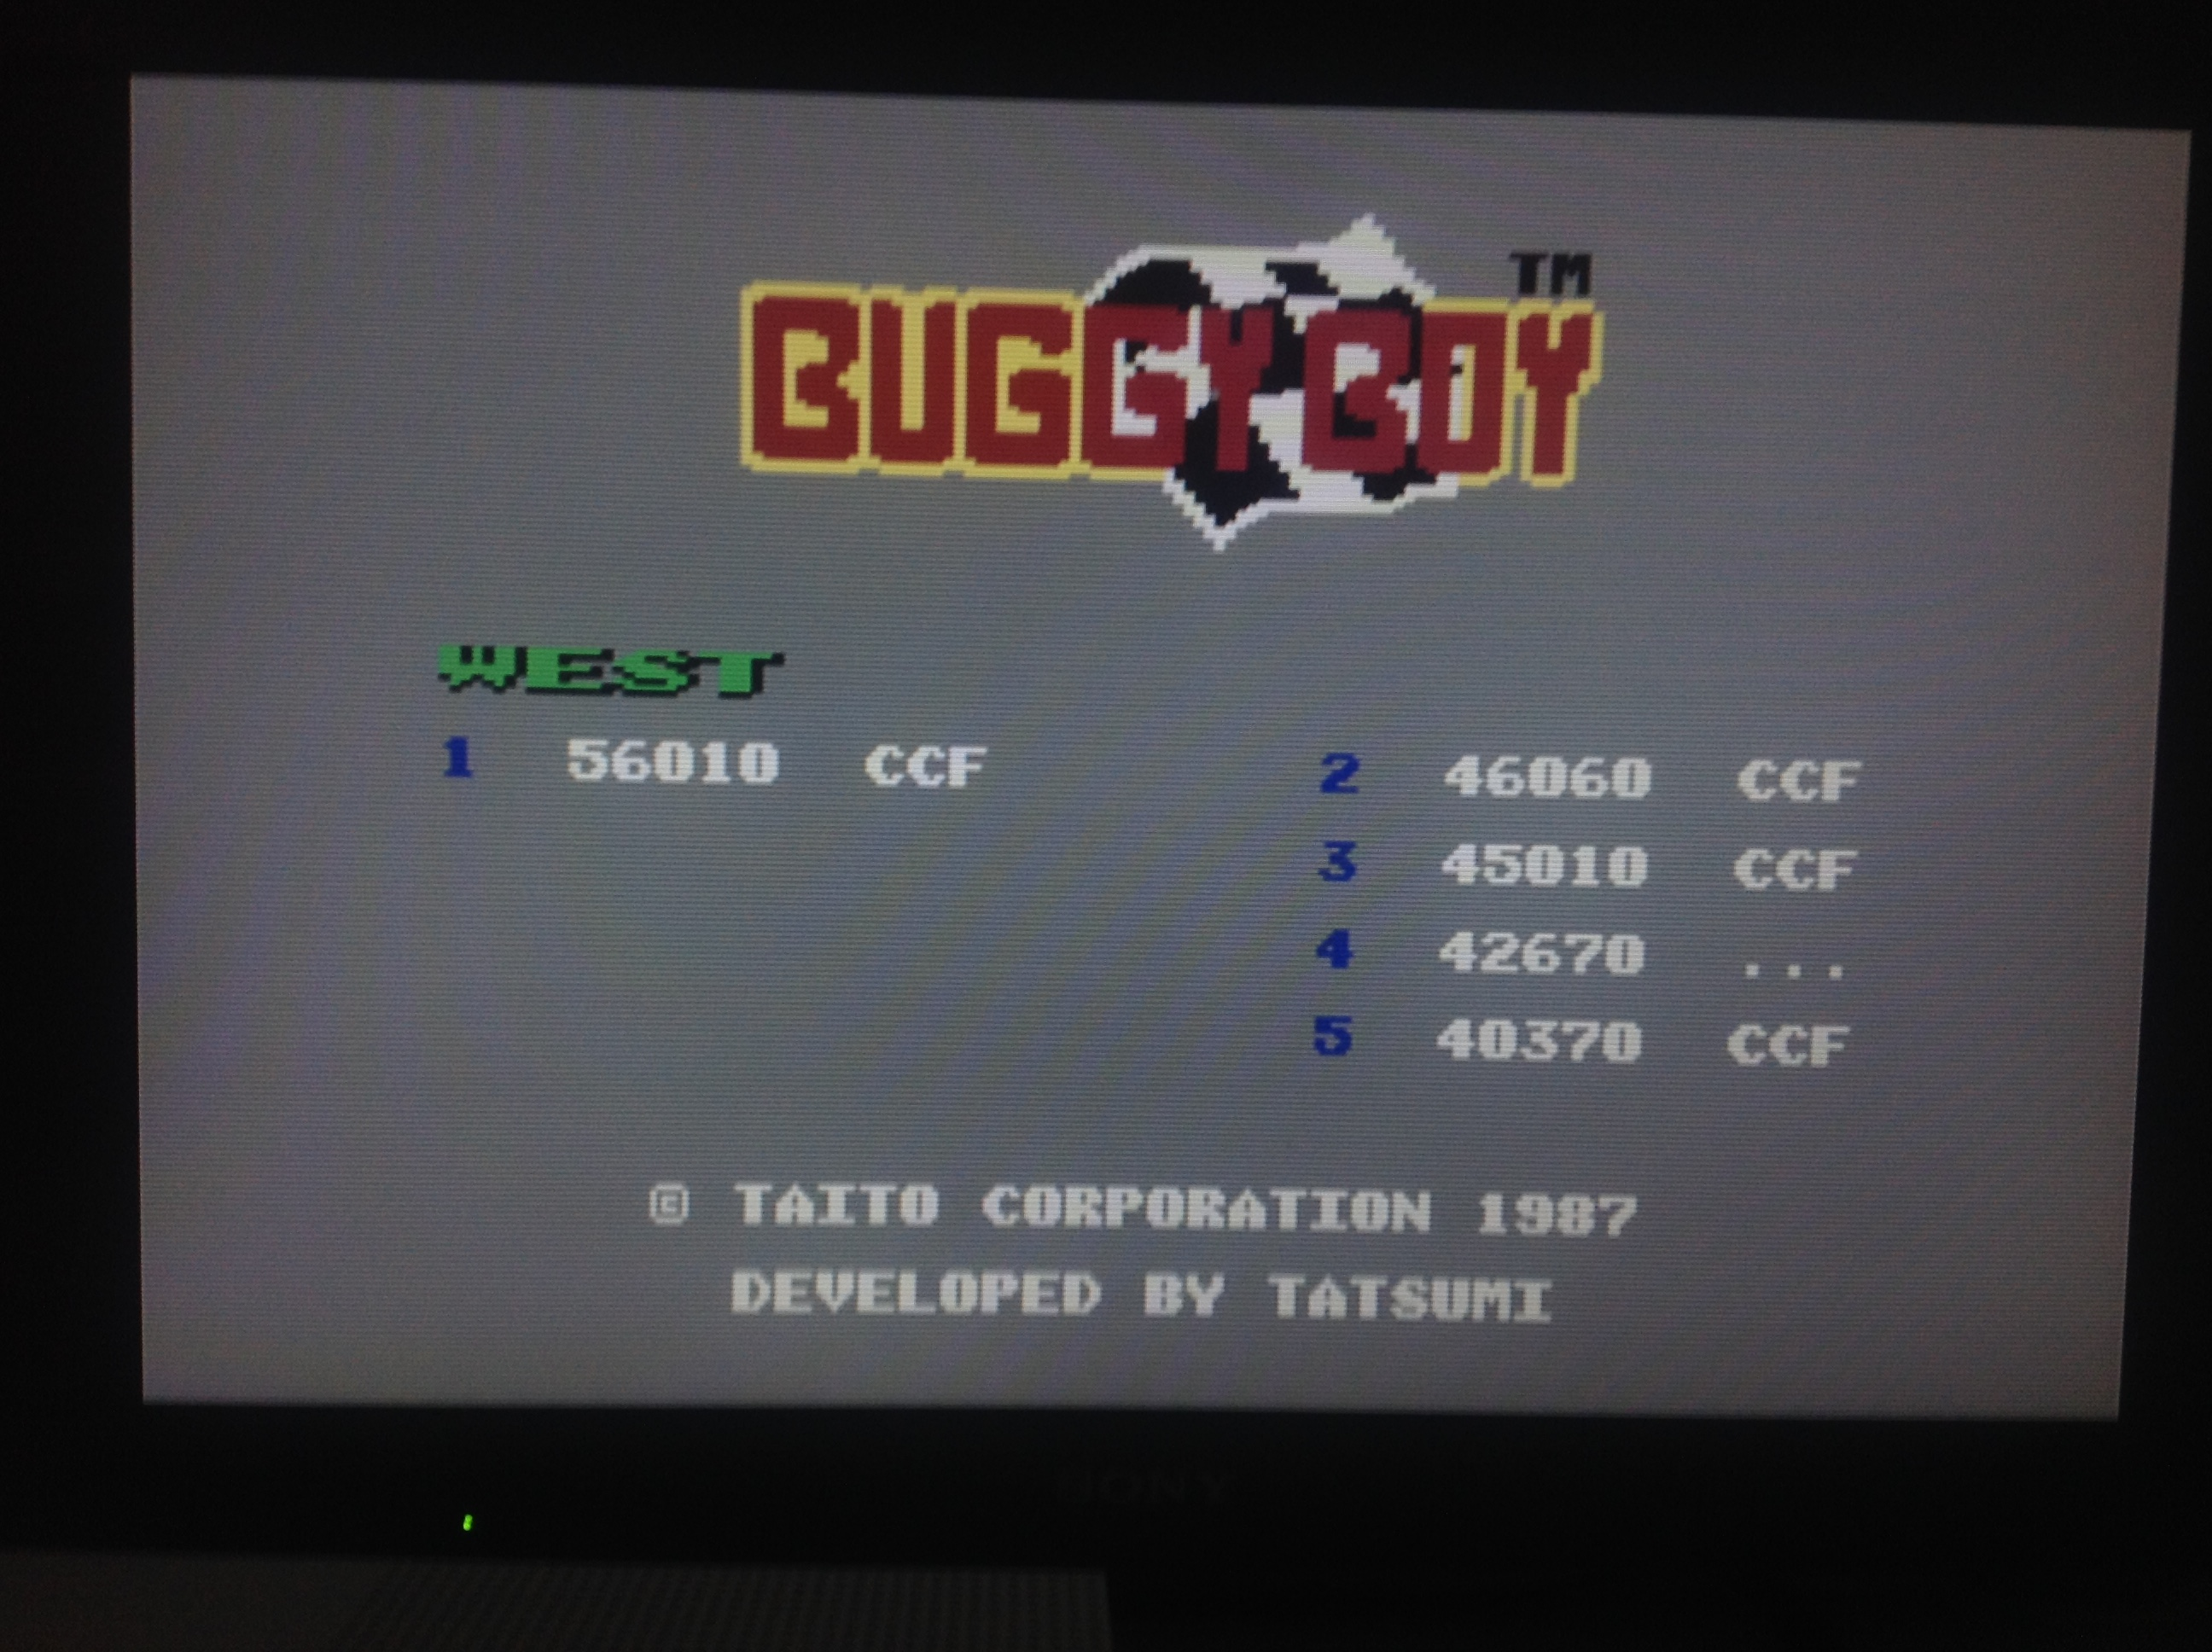 CoCoForest: Buggy Boy: West (Commodore 64 Emulated) 56,010 points on 2018-04-24 11:55:47